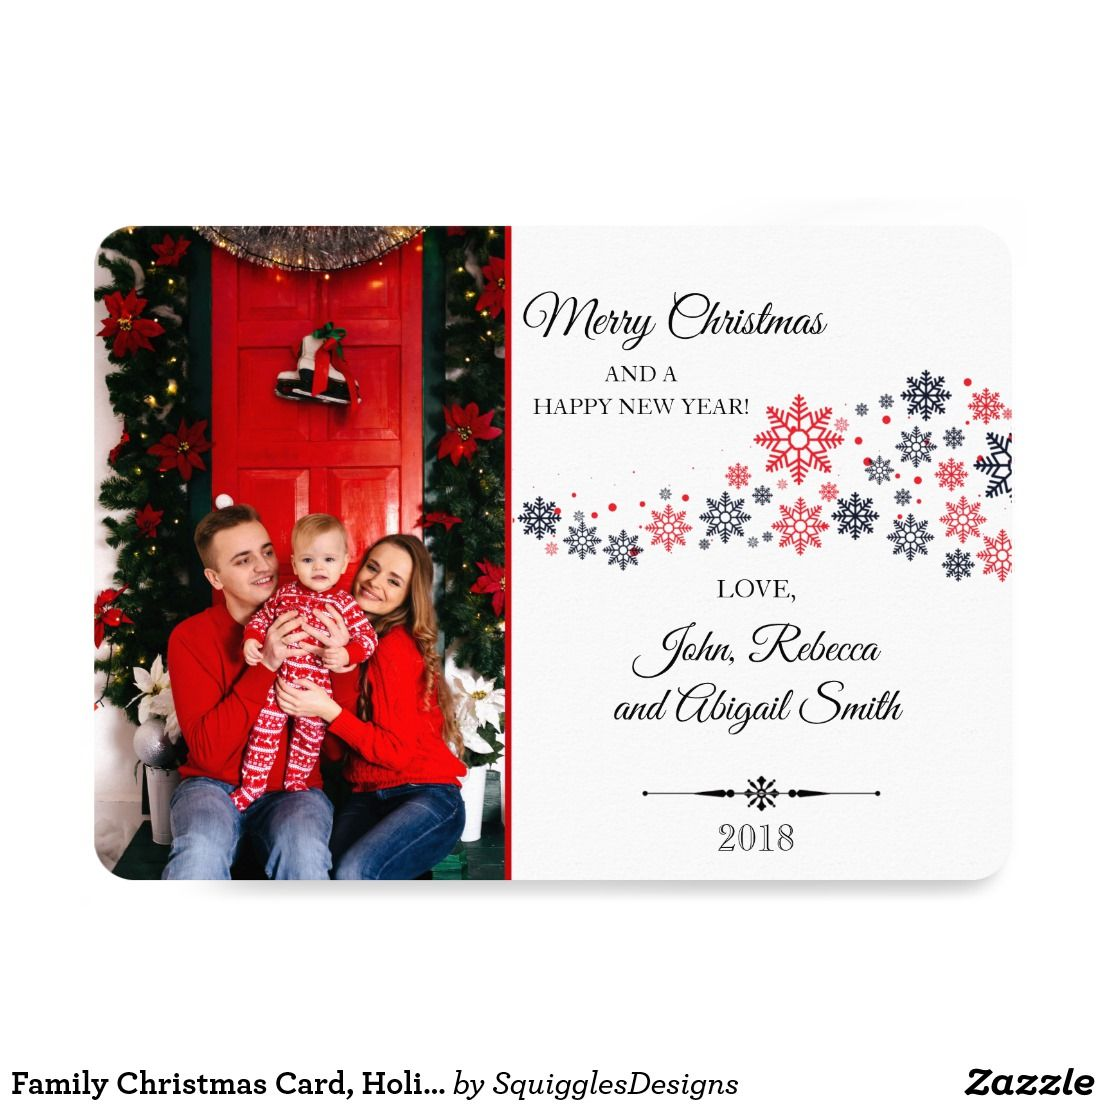 Family Christmas Card Holiday Photo Greeting Card Zazzle Com